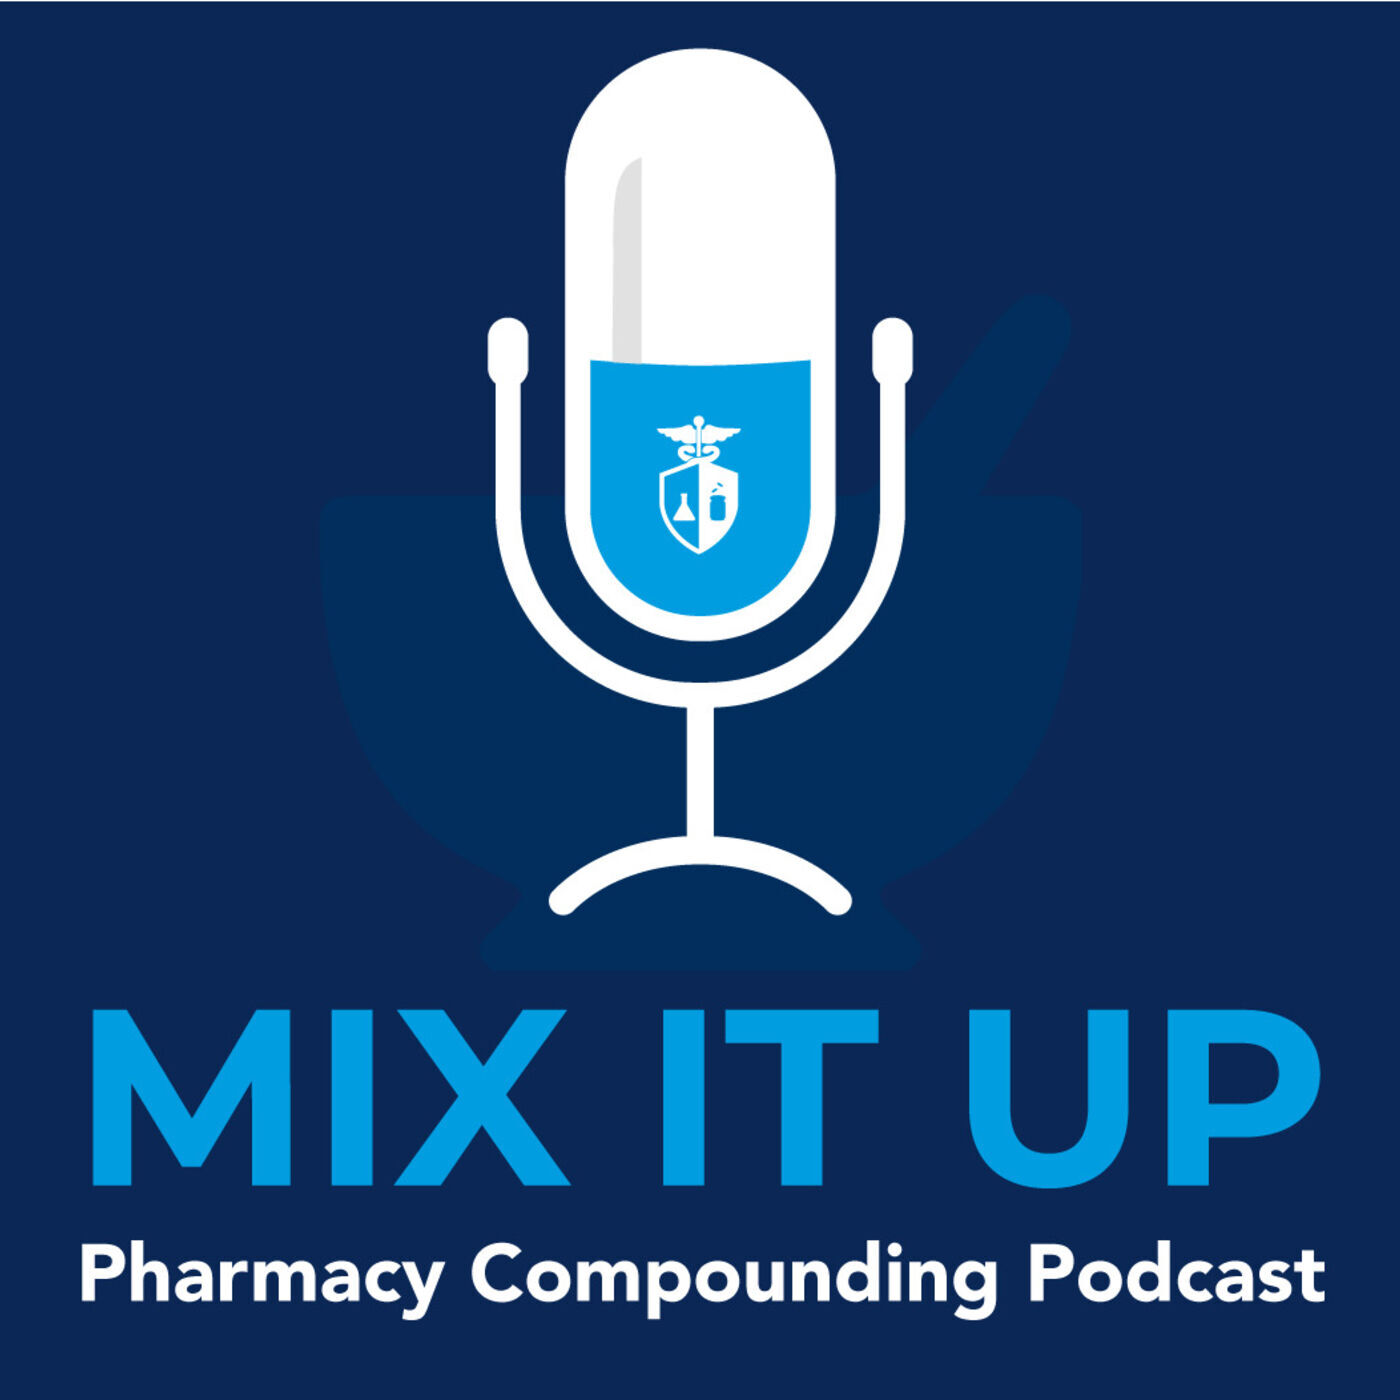 Episode 1.11 - Compounding Pharmacy Advocacy: Interview with Scott Brunner